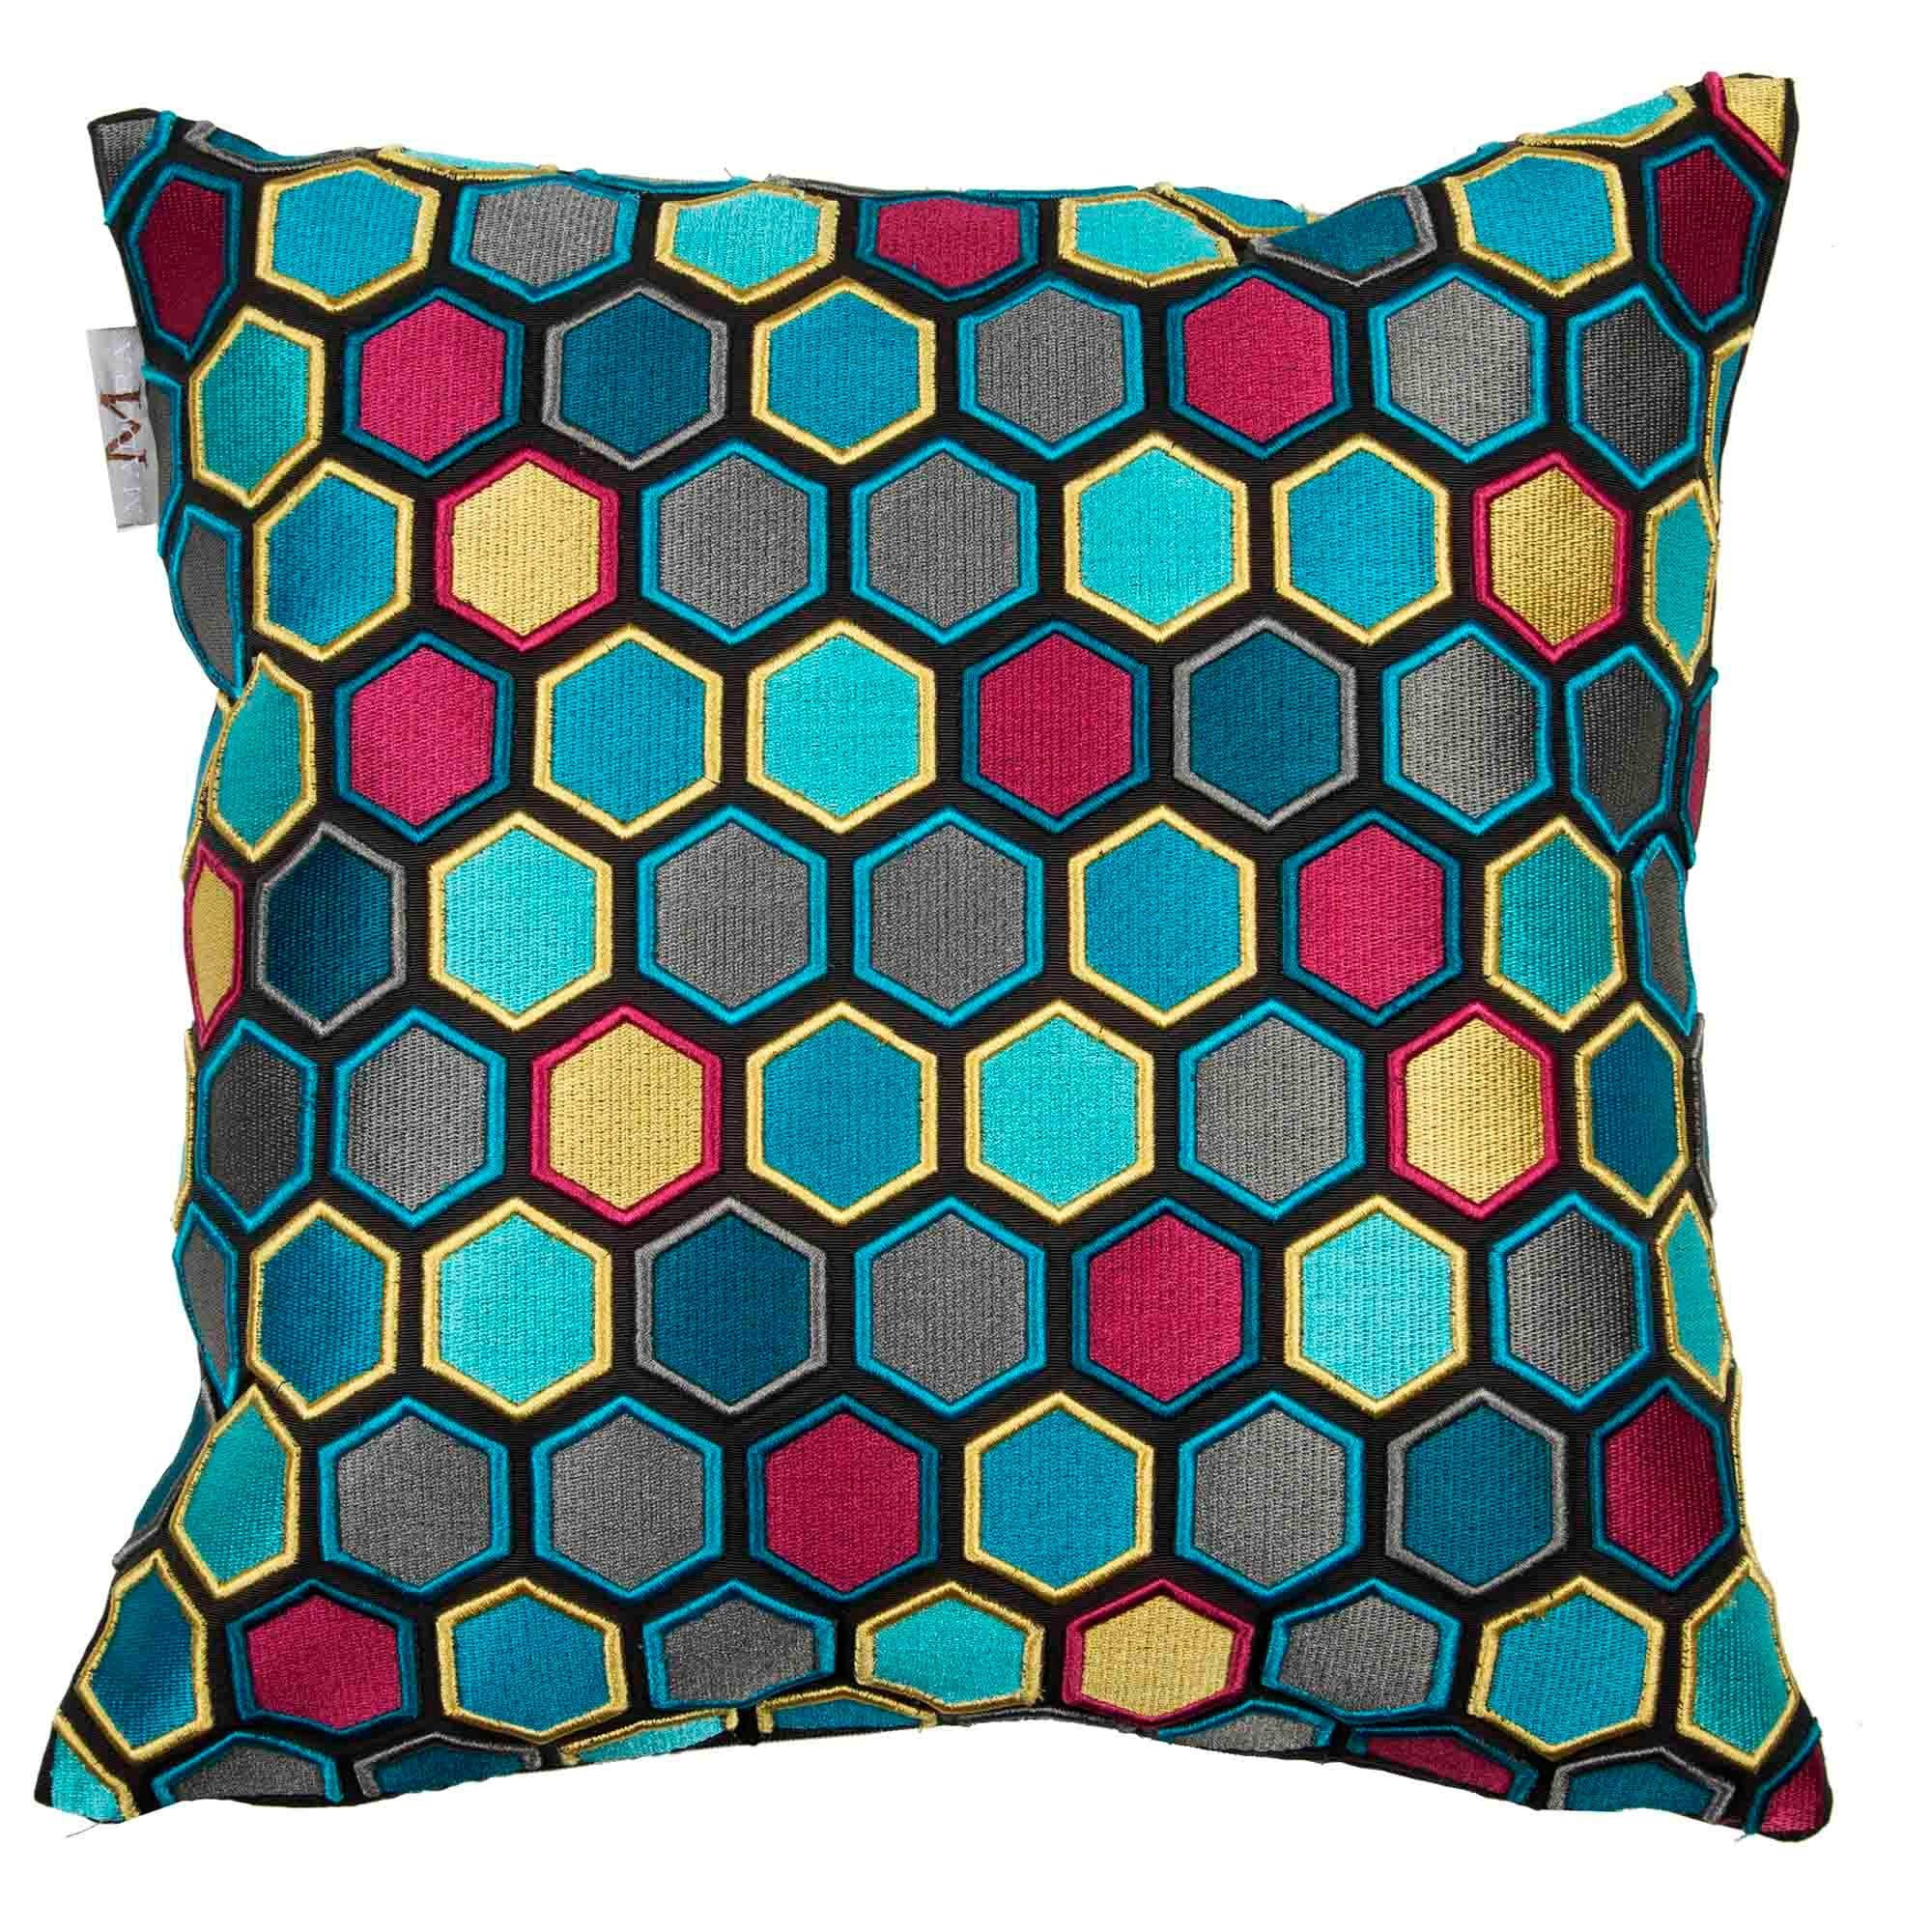 Madura Decorative Pillow - Throw Pillow cover Honey 16X16 Blue And Red